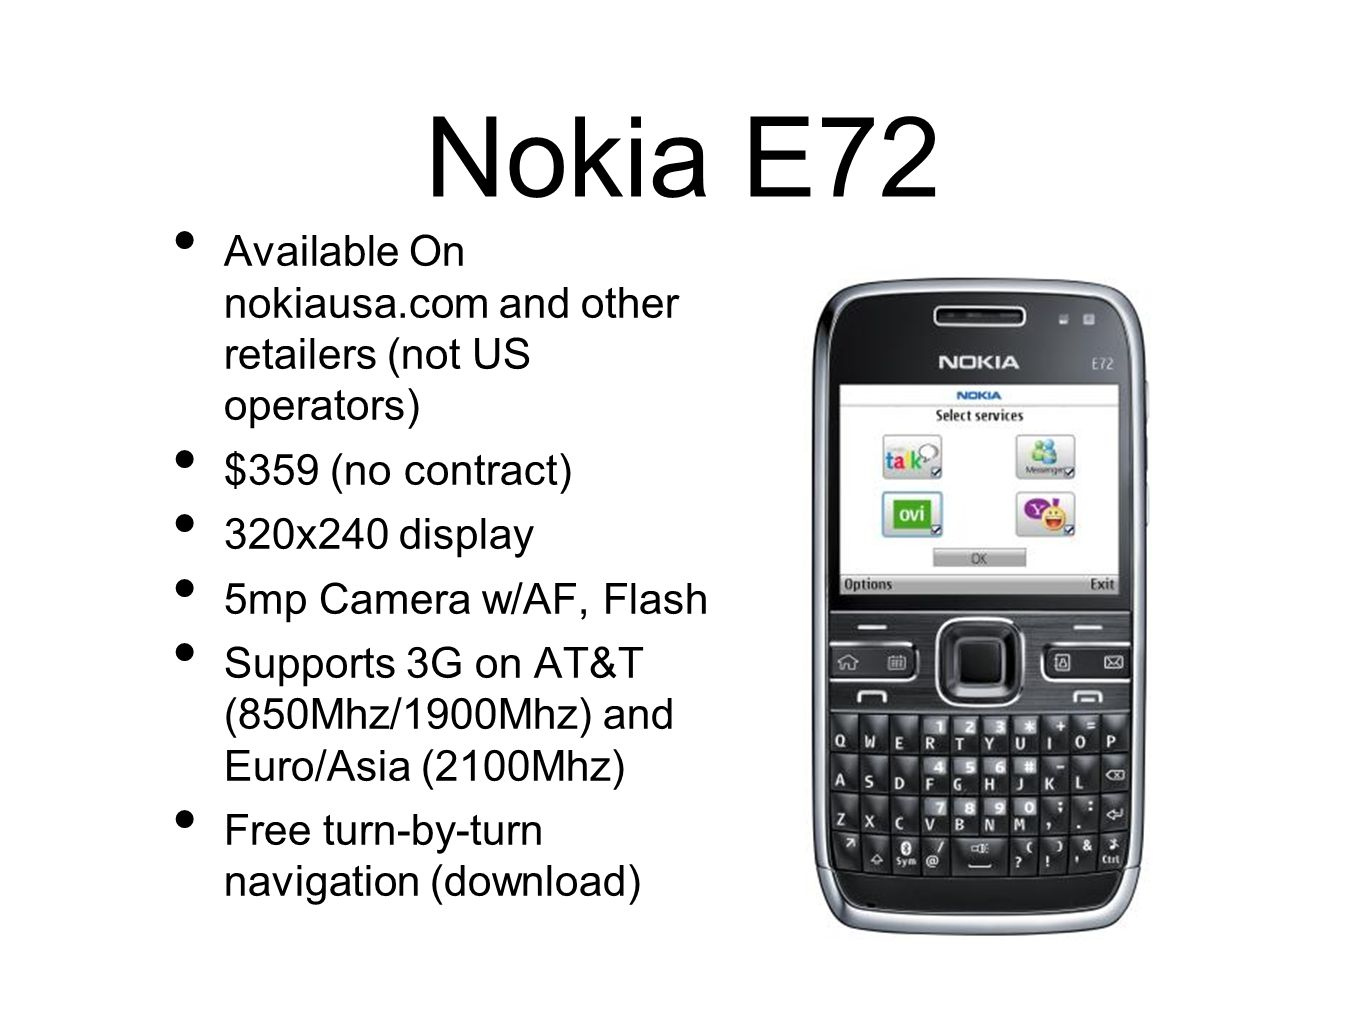 Nokia E72 Available On nokiausa.com and other retailers (not US operators) $359 (no contract) 320x240 display.